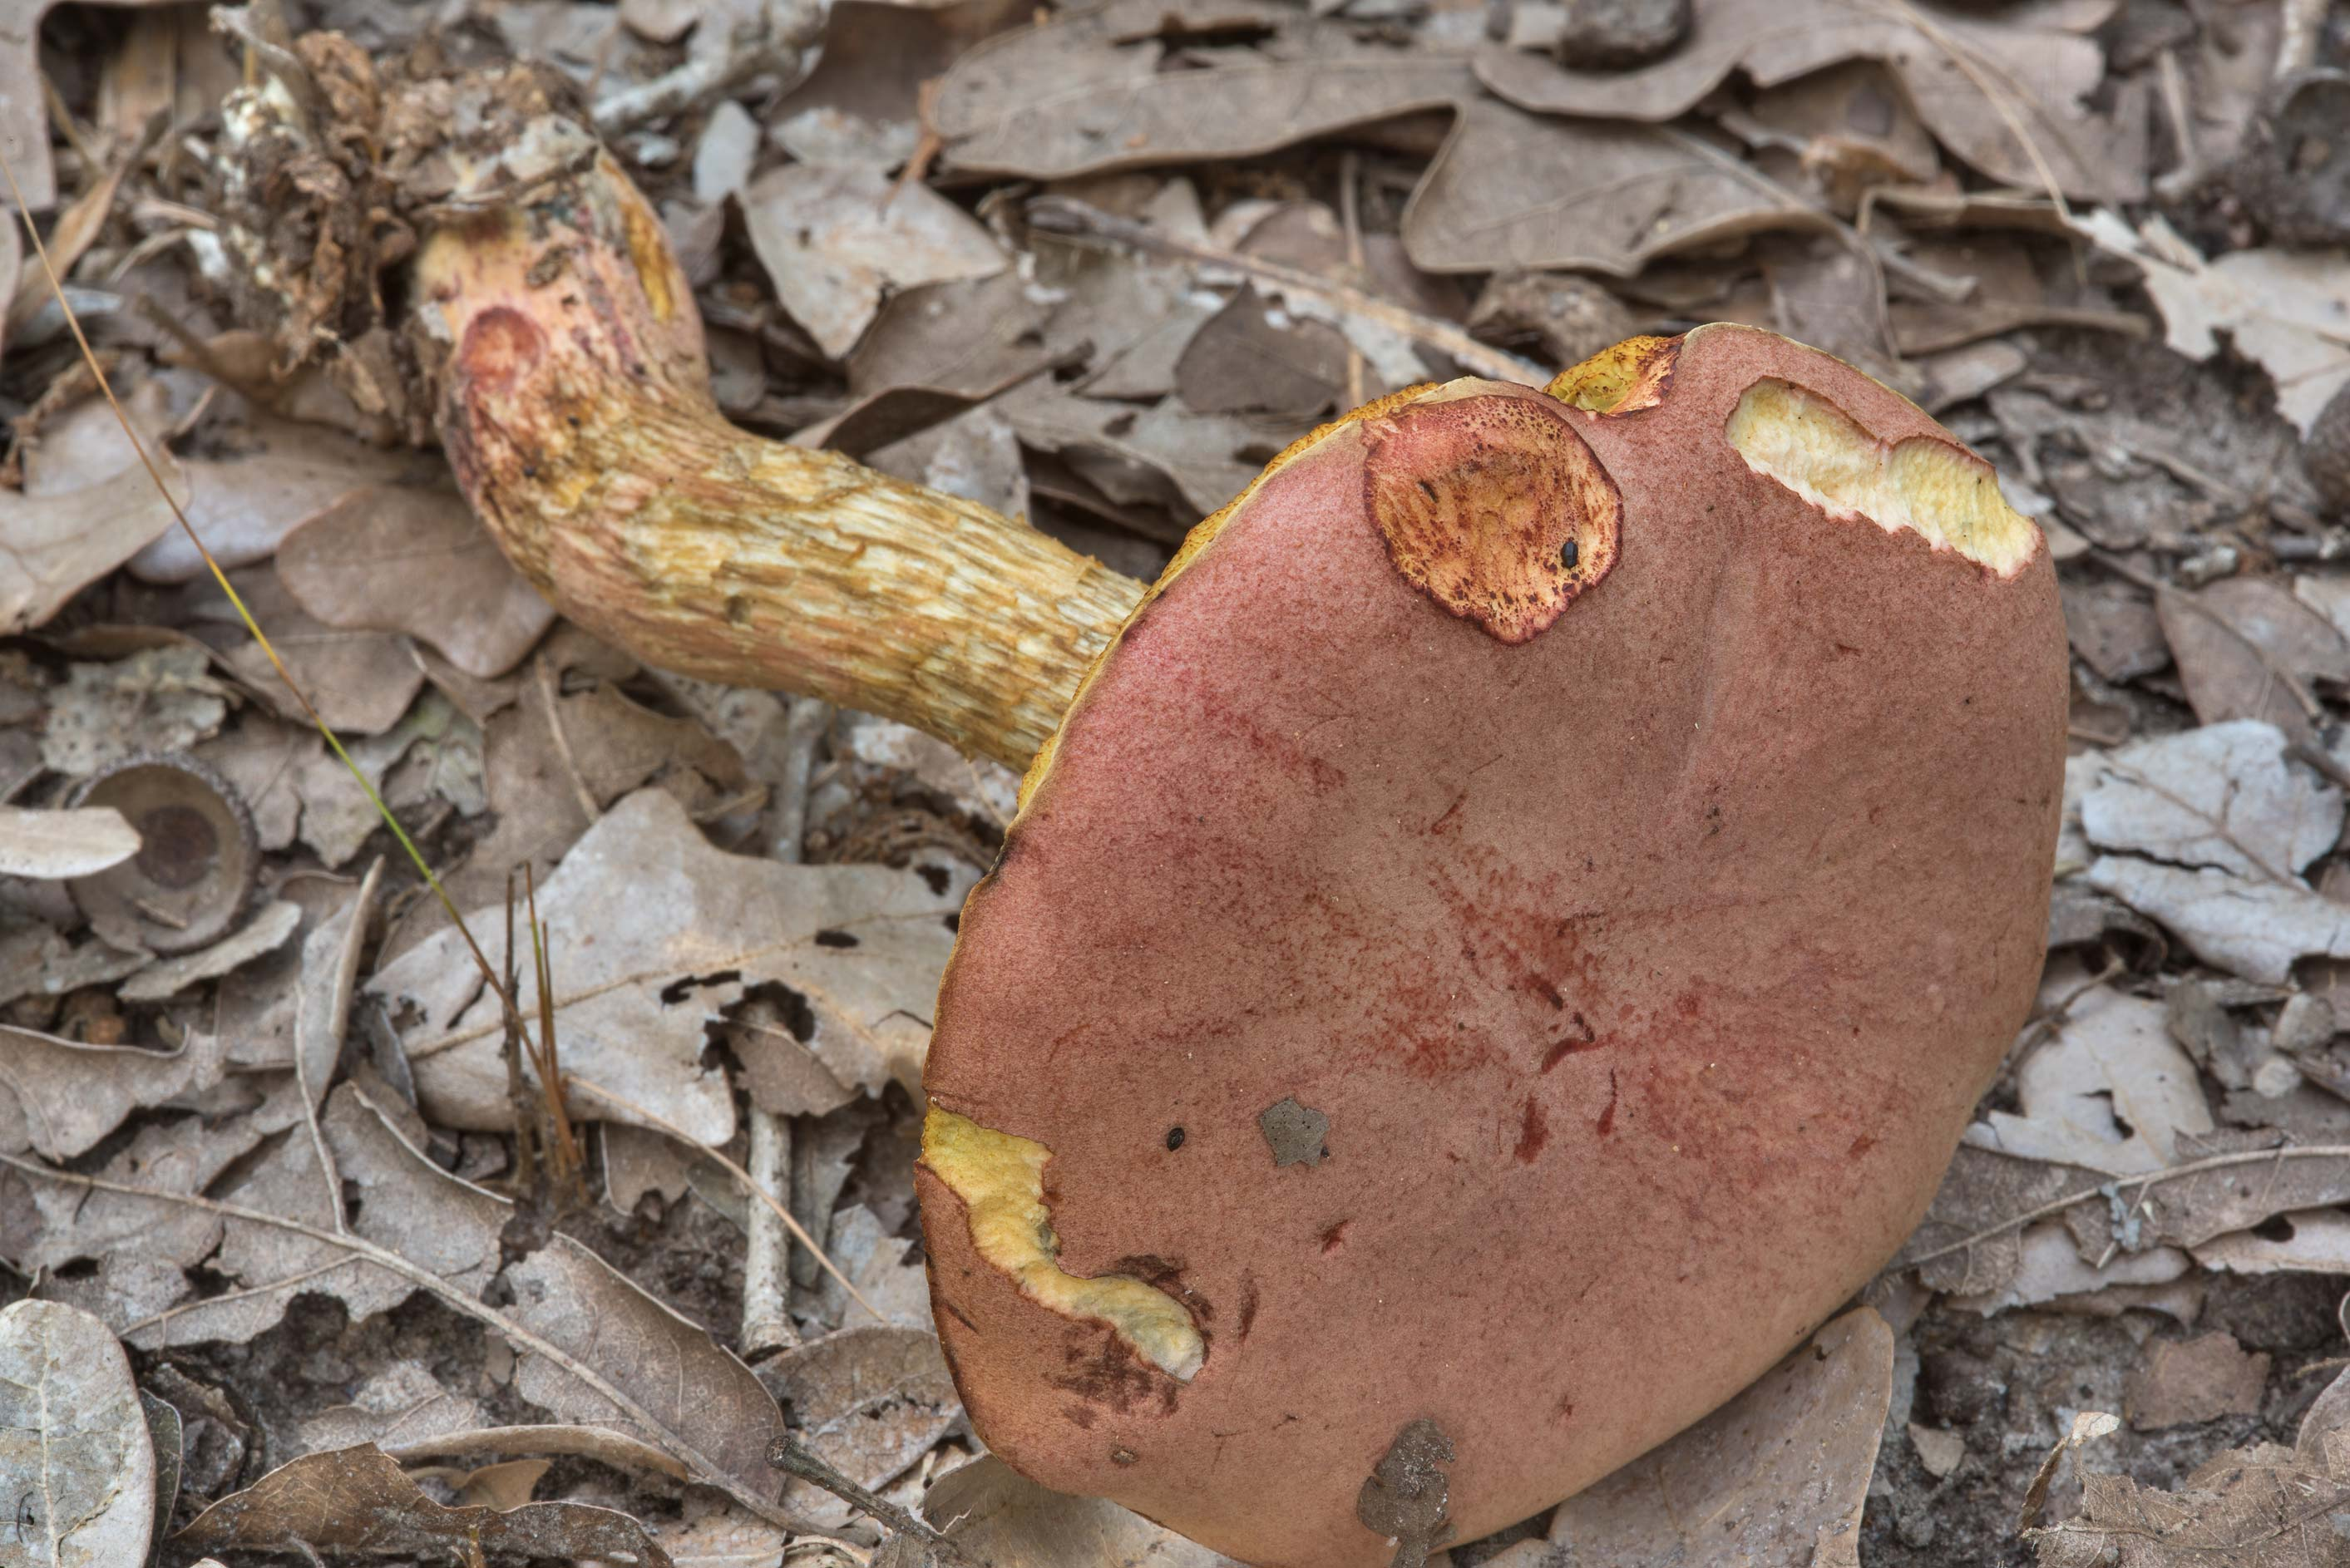 Cap of Pulchroboletus rubricitrinus mushroom in Lick Creek Park. College Station, Texas